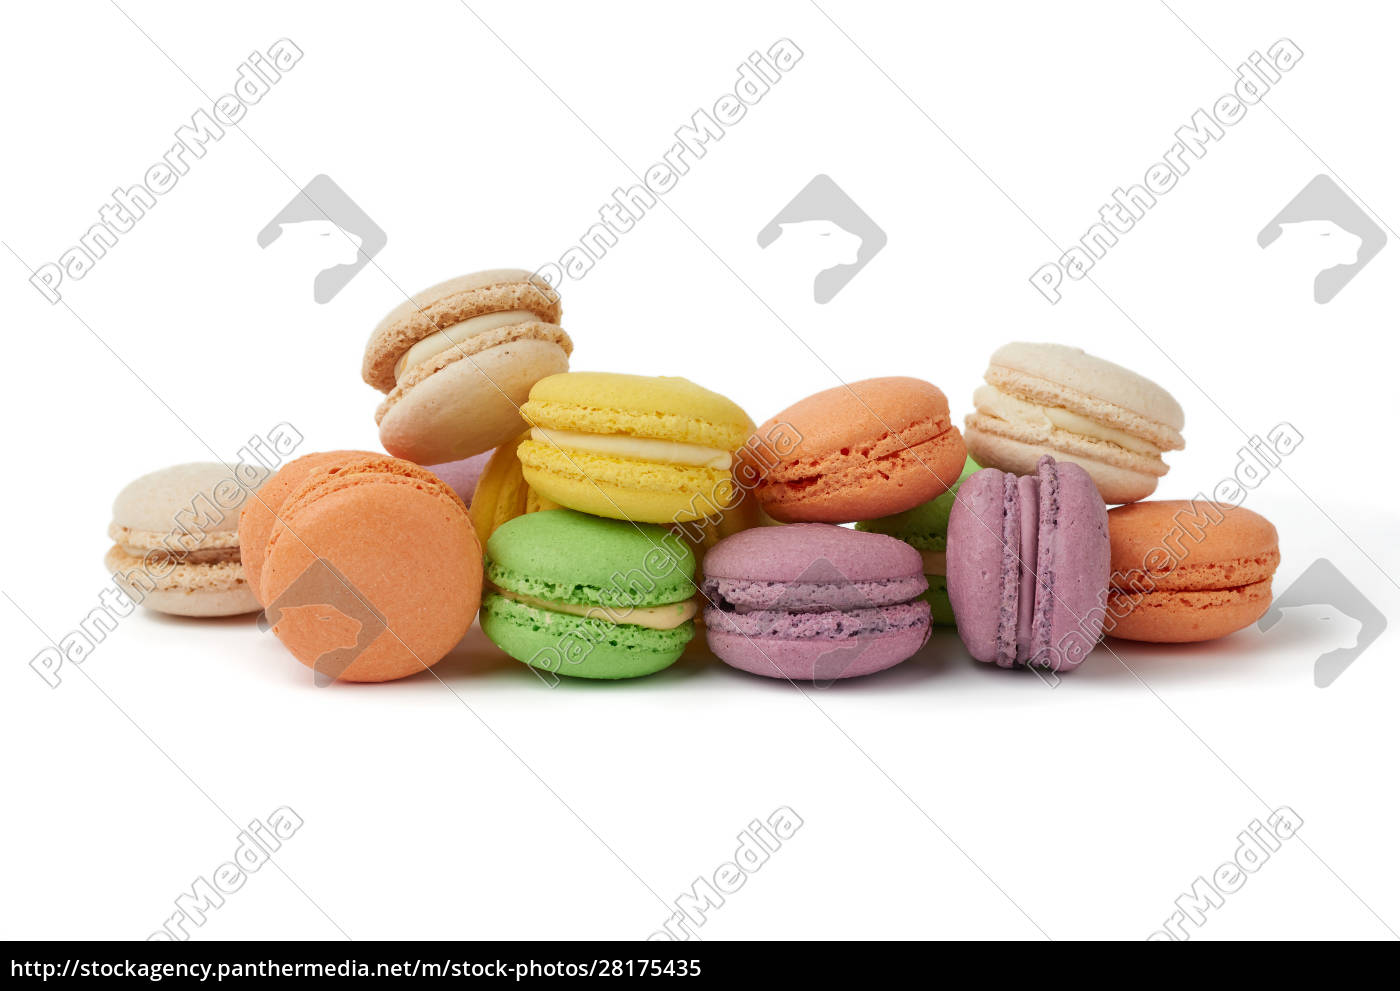 round, baked, multi-colored, almond, flour, cakes - 28175435